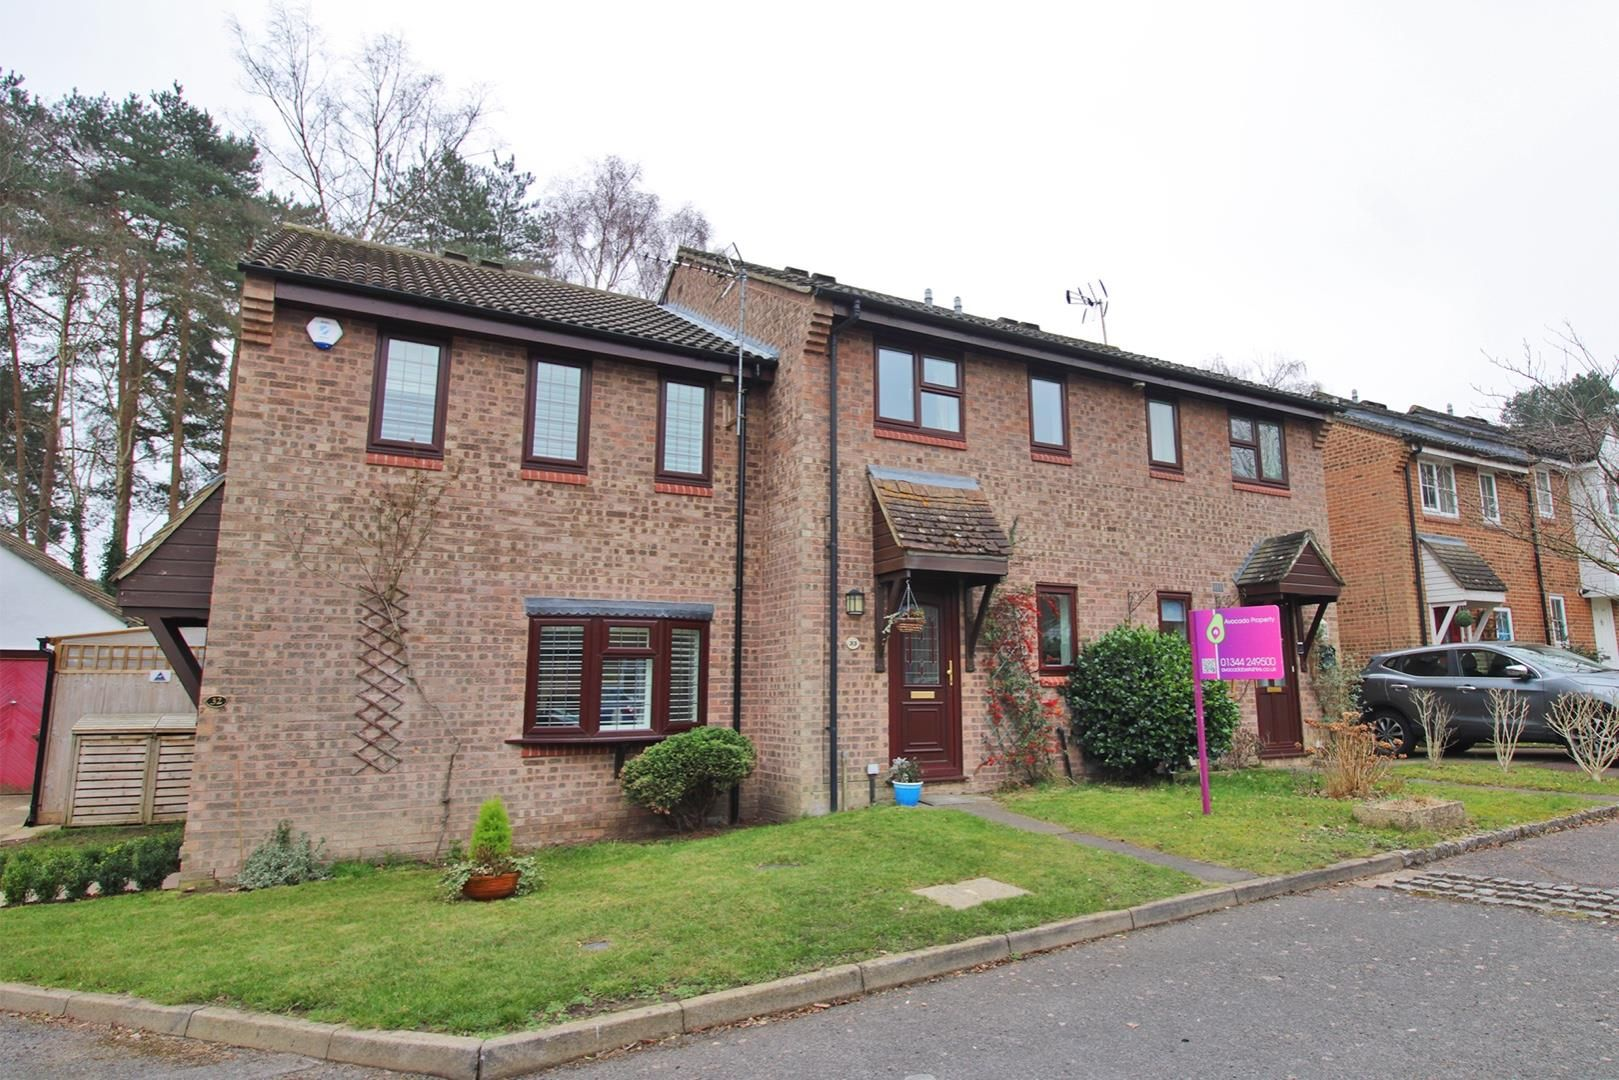 2 bed terraced for sale in Forest Park - Property Image 1